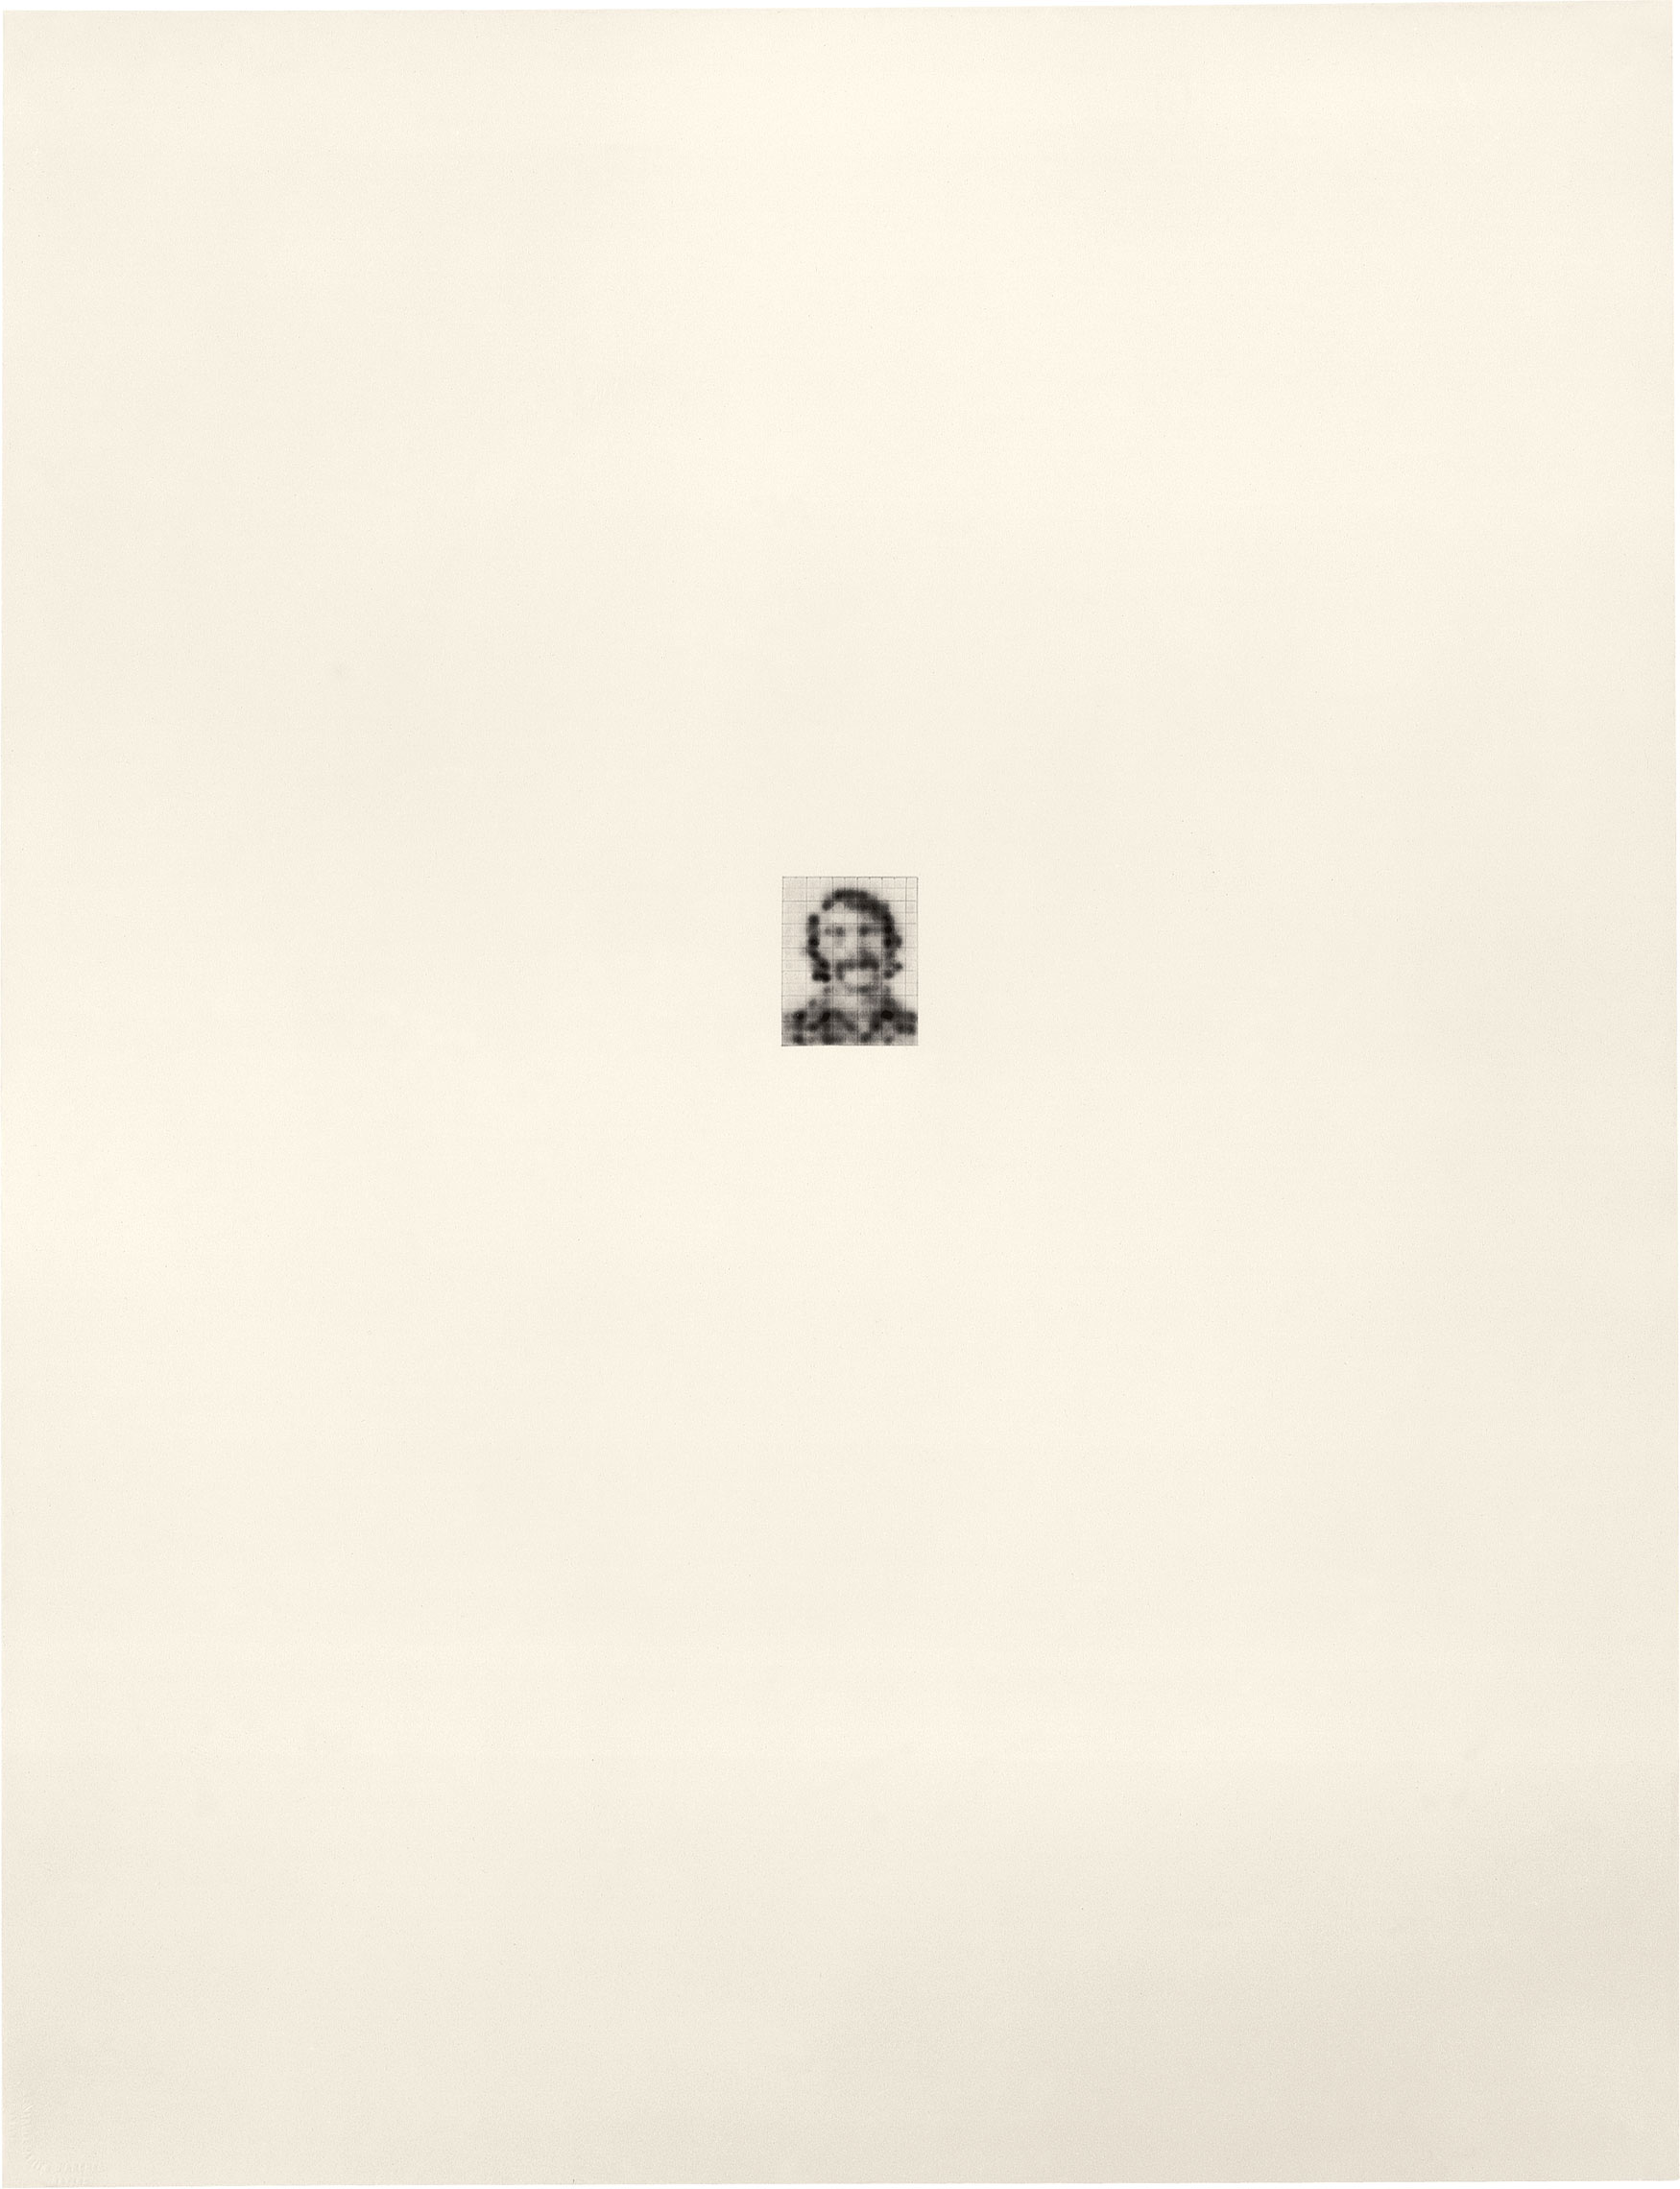 Robert l/154, 1974; ink and graphite on paper (Photo © 1991 Fredrik Marsh)